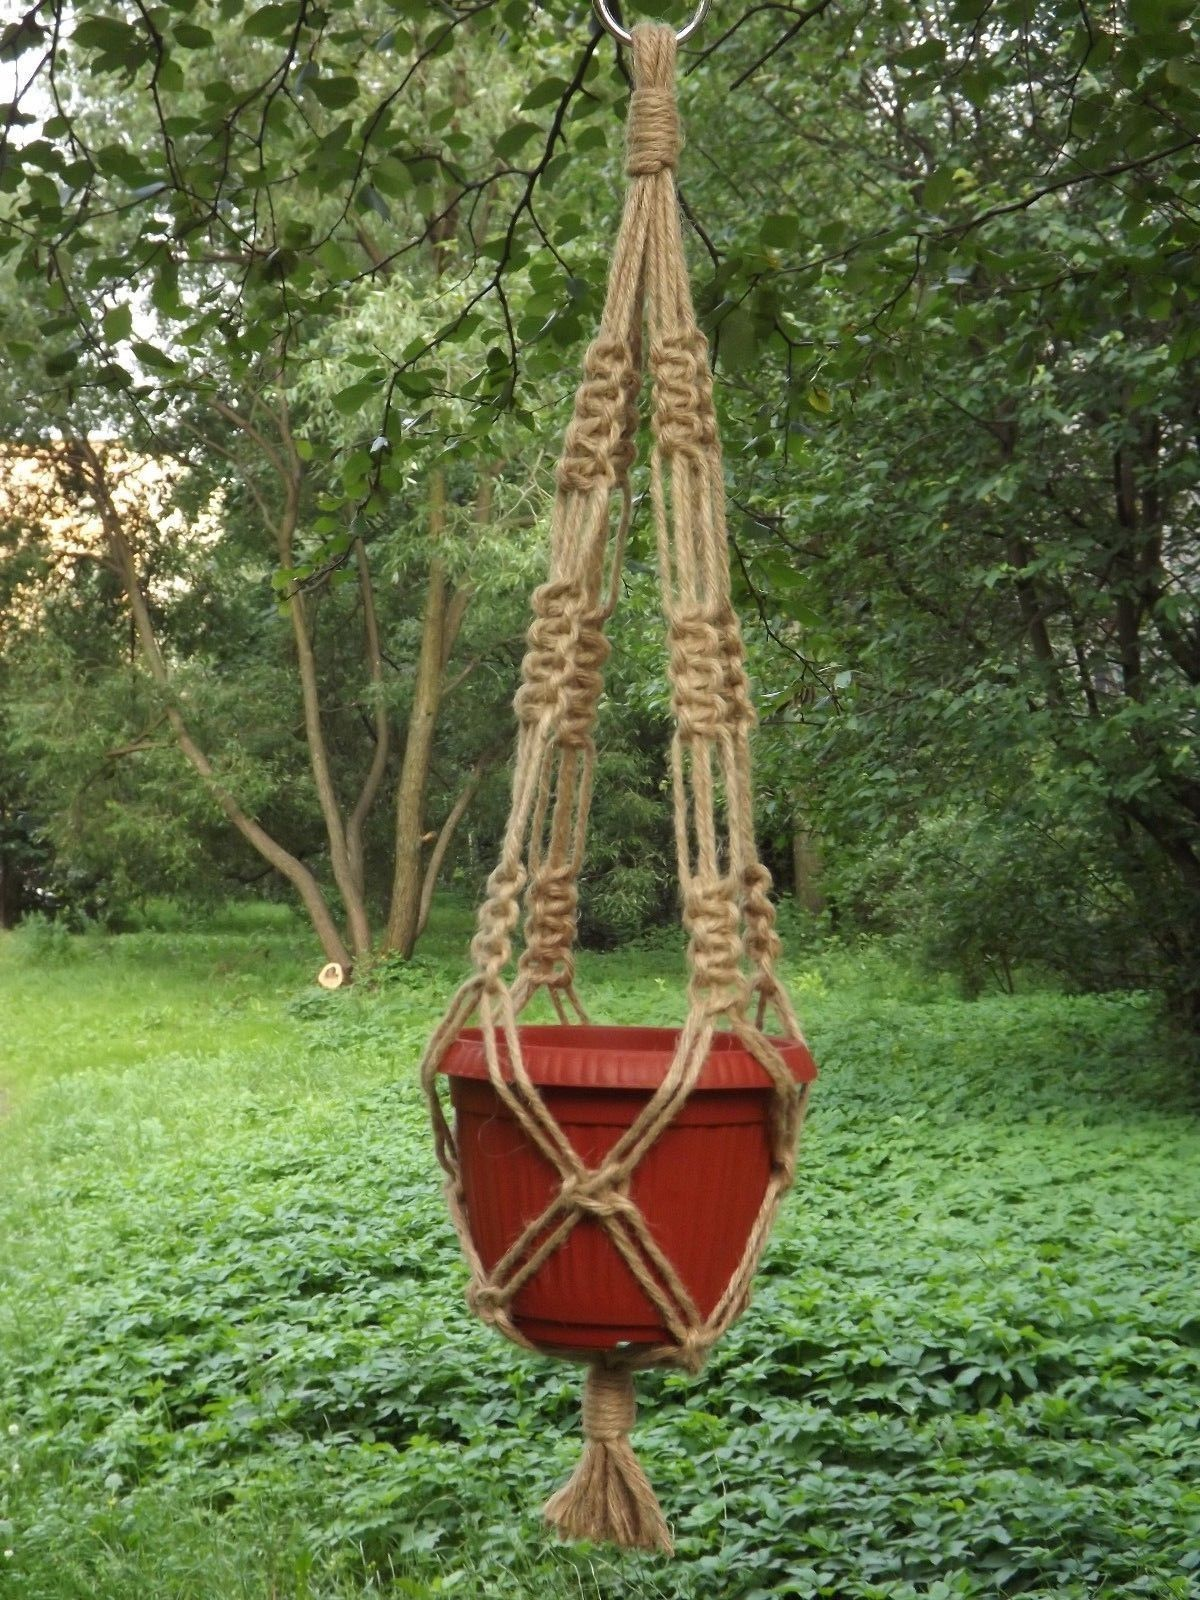 D #Home & Living #Home Décor #macrame #plant hanger #plant holder #Macrame Plant Hanger # Macrame Plant #Hanging Planter #Outdoor #Macrame Plant Holder #Home Decor #Jute #Kitchen #Bedroom # Vintage #Gardening #Handmade